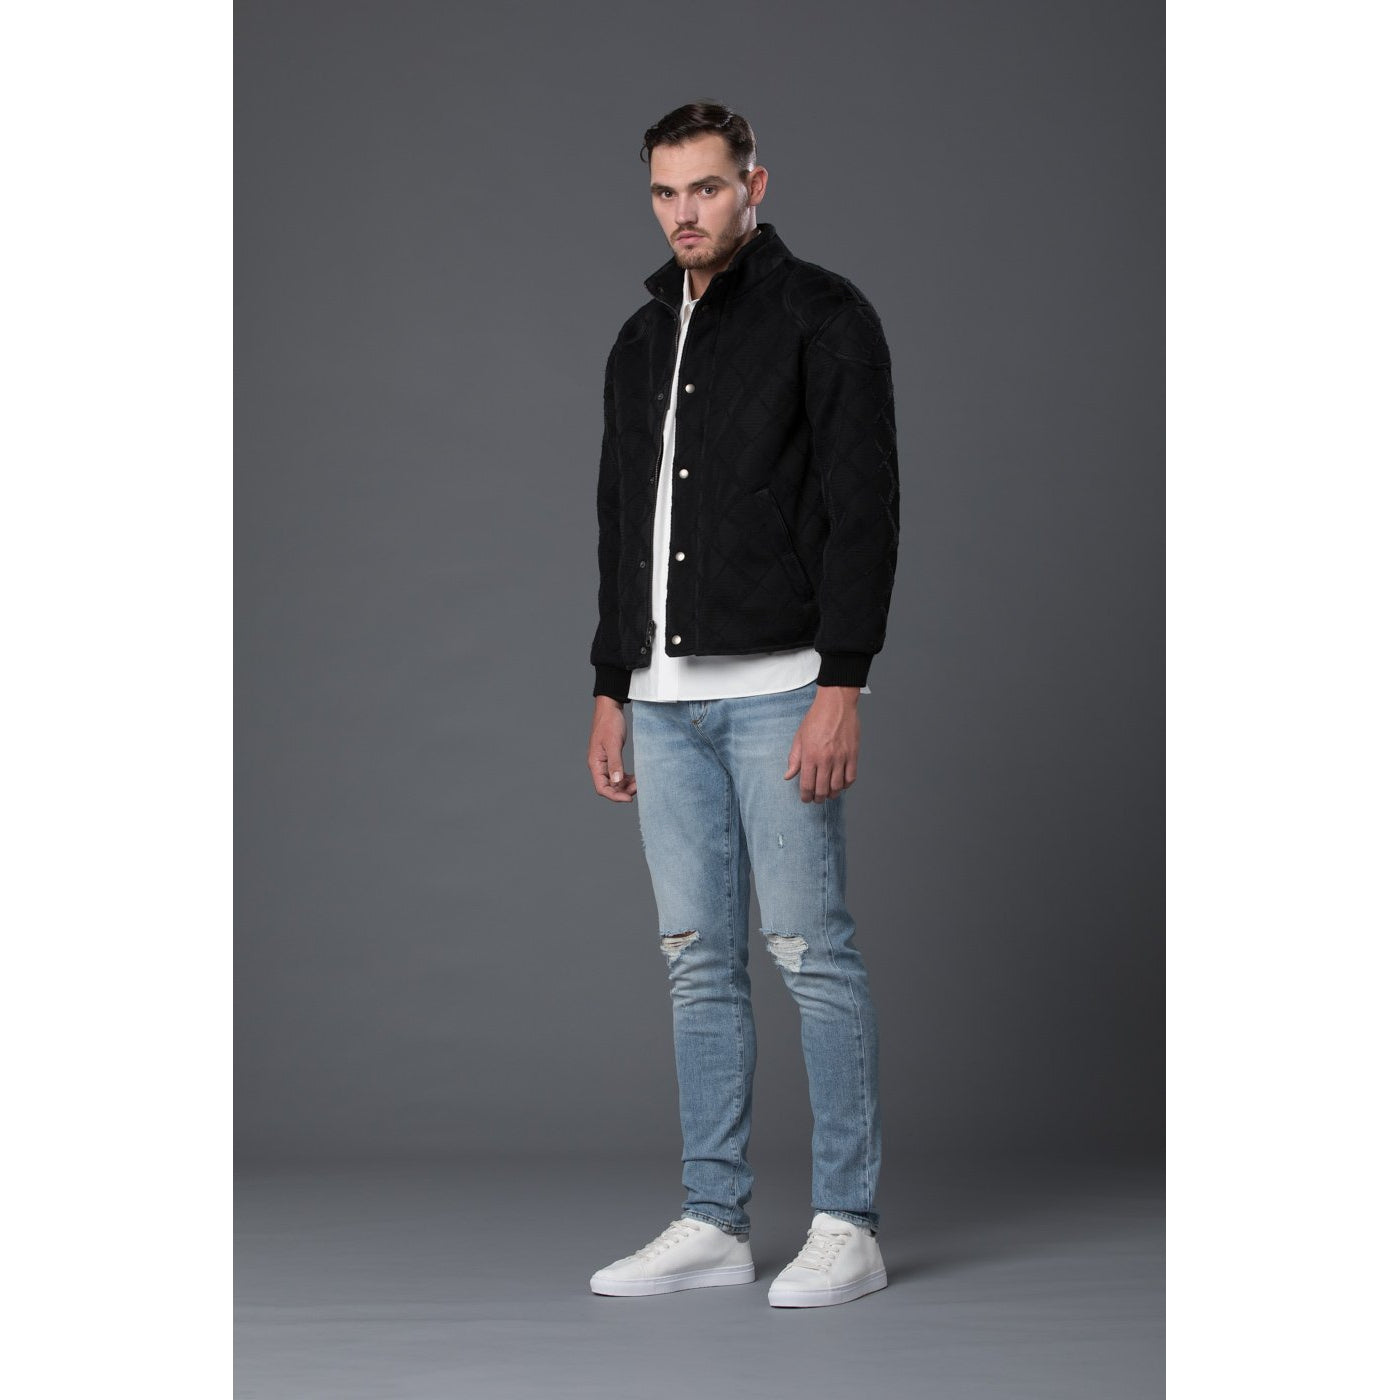 Krammer Stoudt Black Jacket